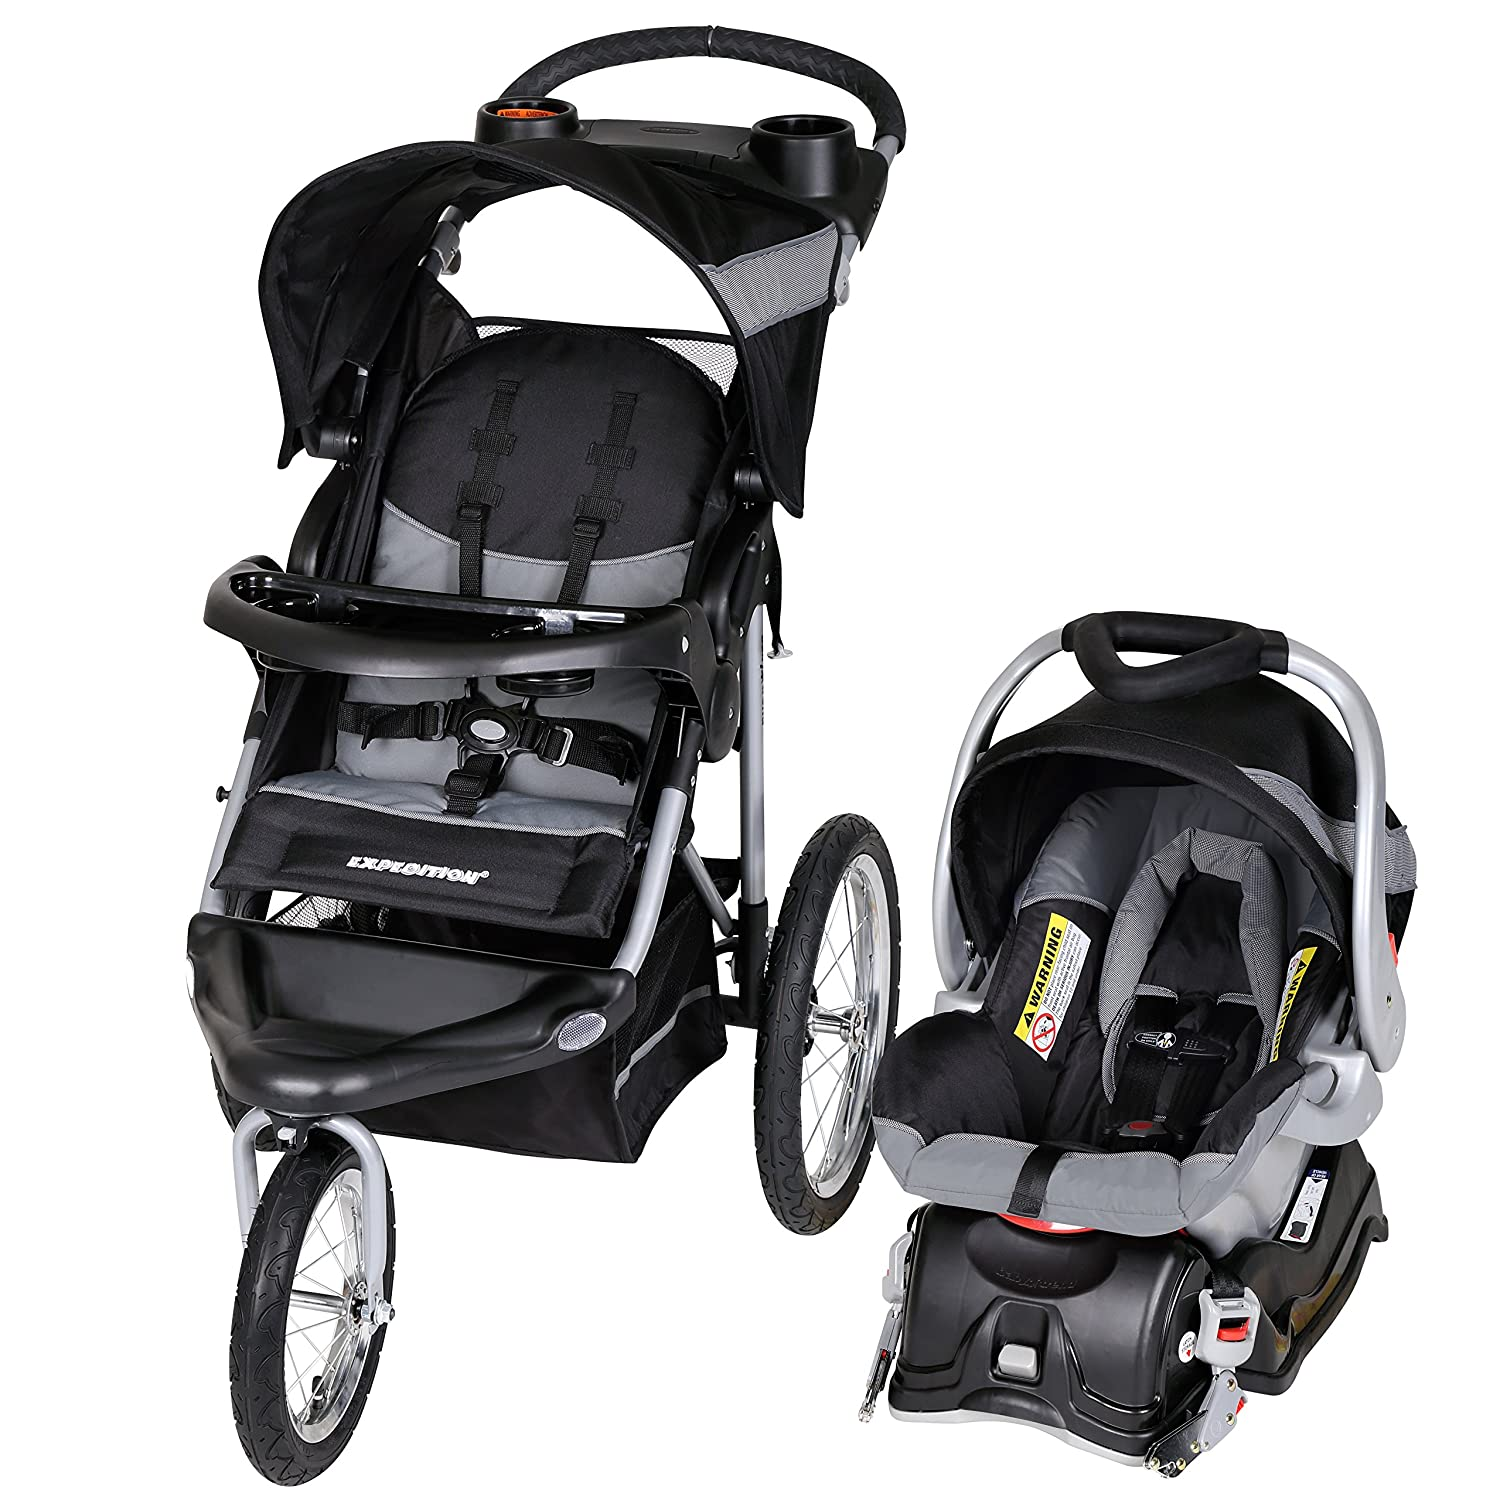 Amazon.com : Baby Trend Expedition Jogger Travel System, Millennium ...